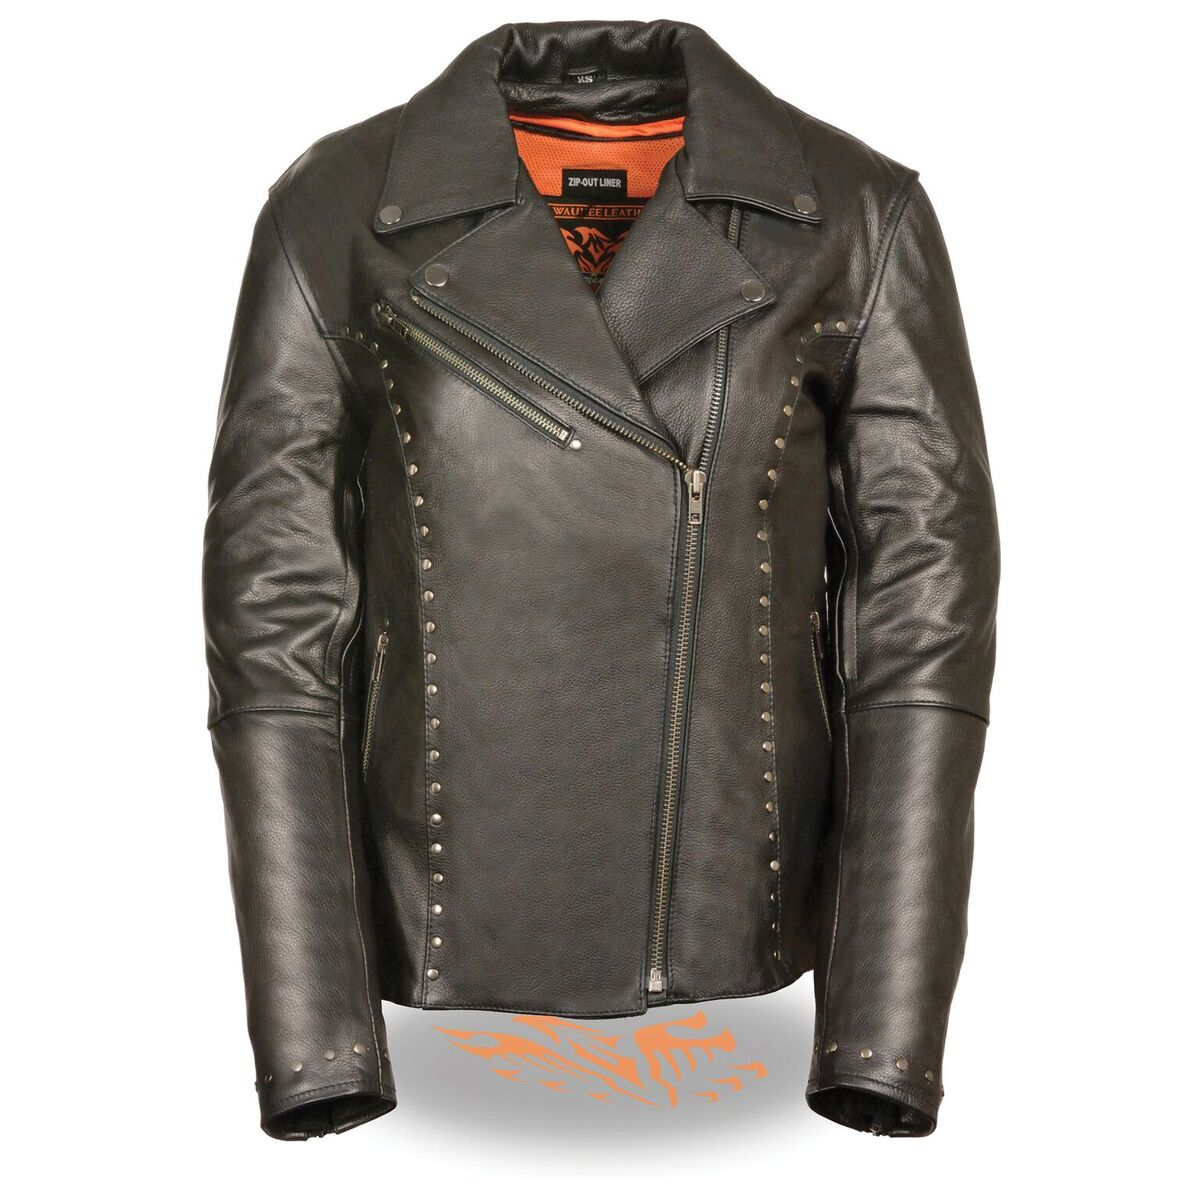 Women's Classic m/C Jacket with Rivet Detailing